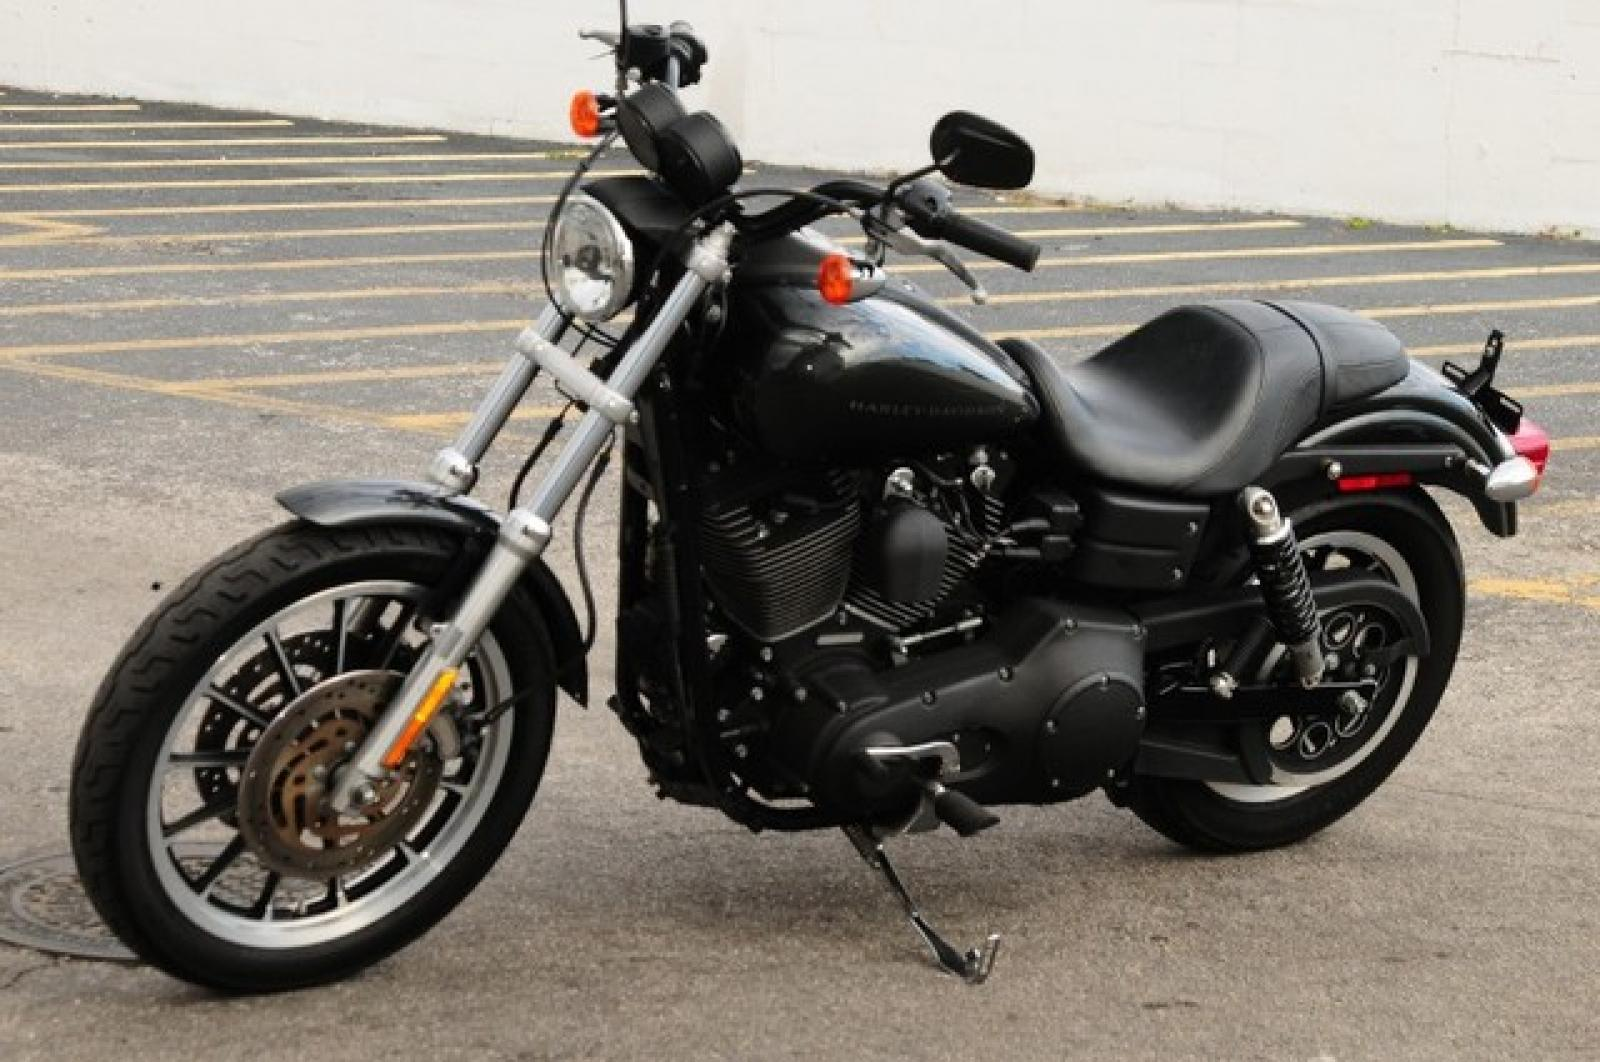 New Or Used Harley--Davidson Super Glide Motorcycle for ...